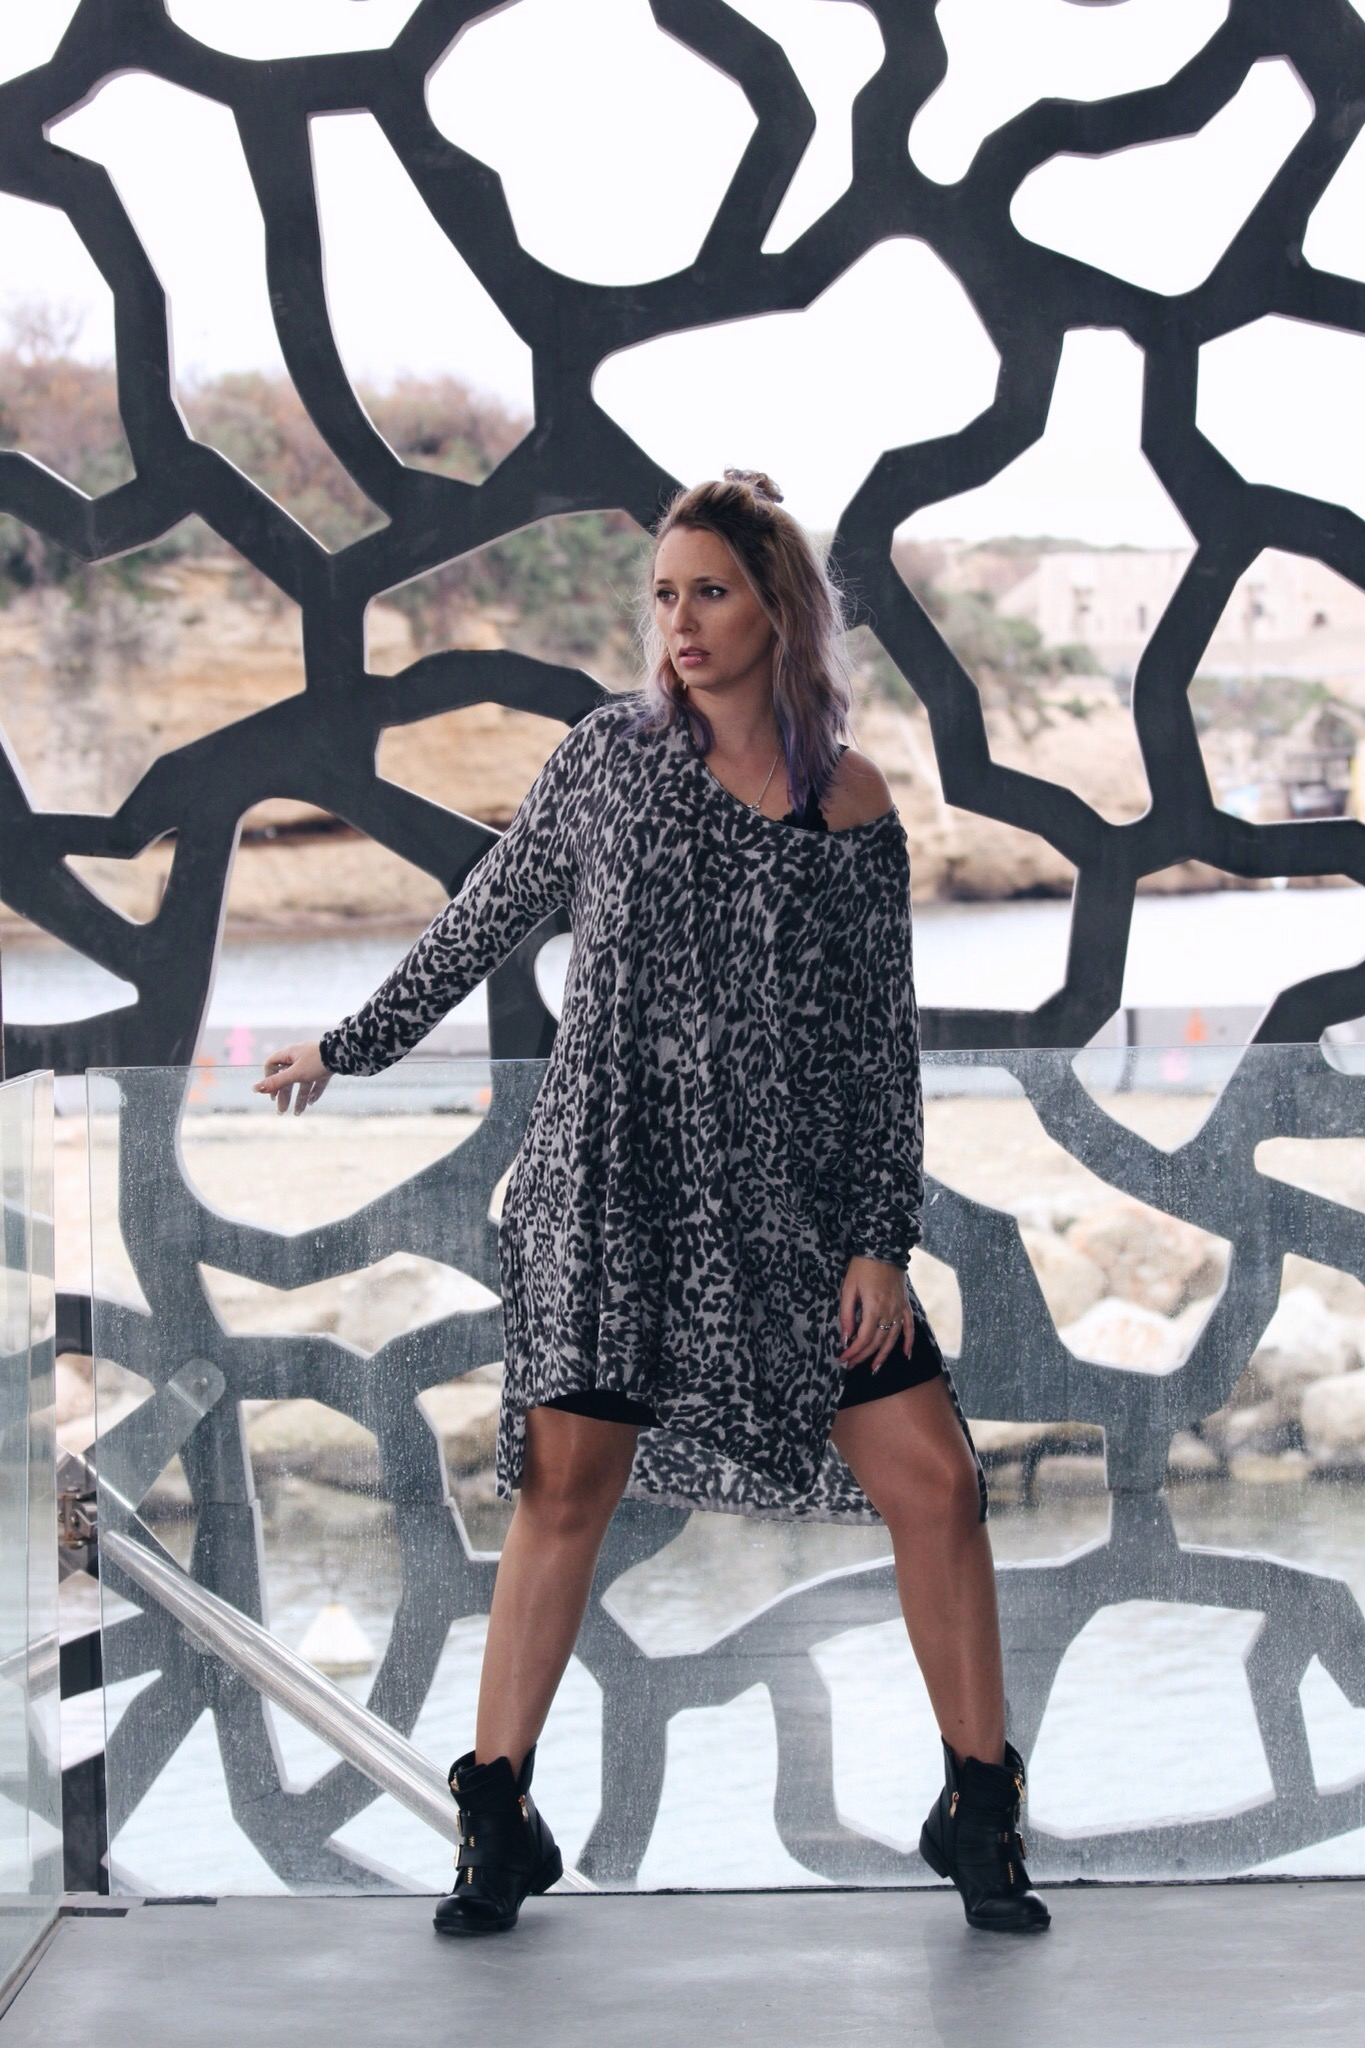 mucem_babou_ootd_look_mode_marseille